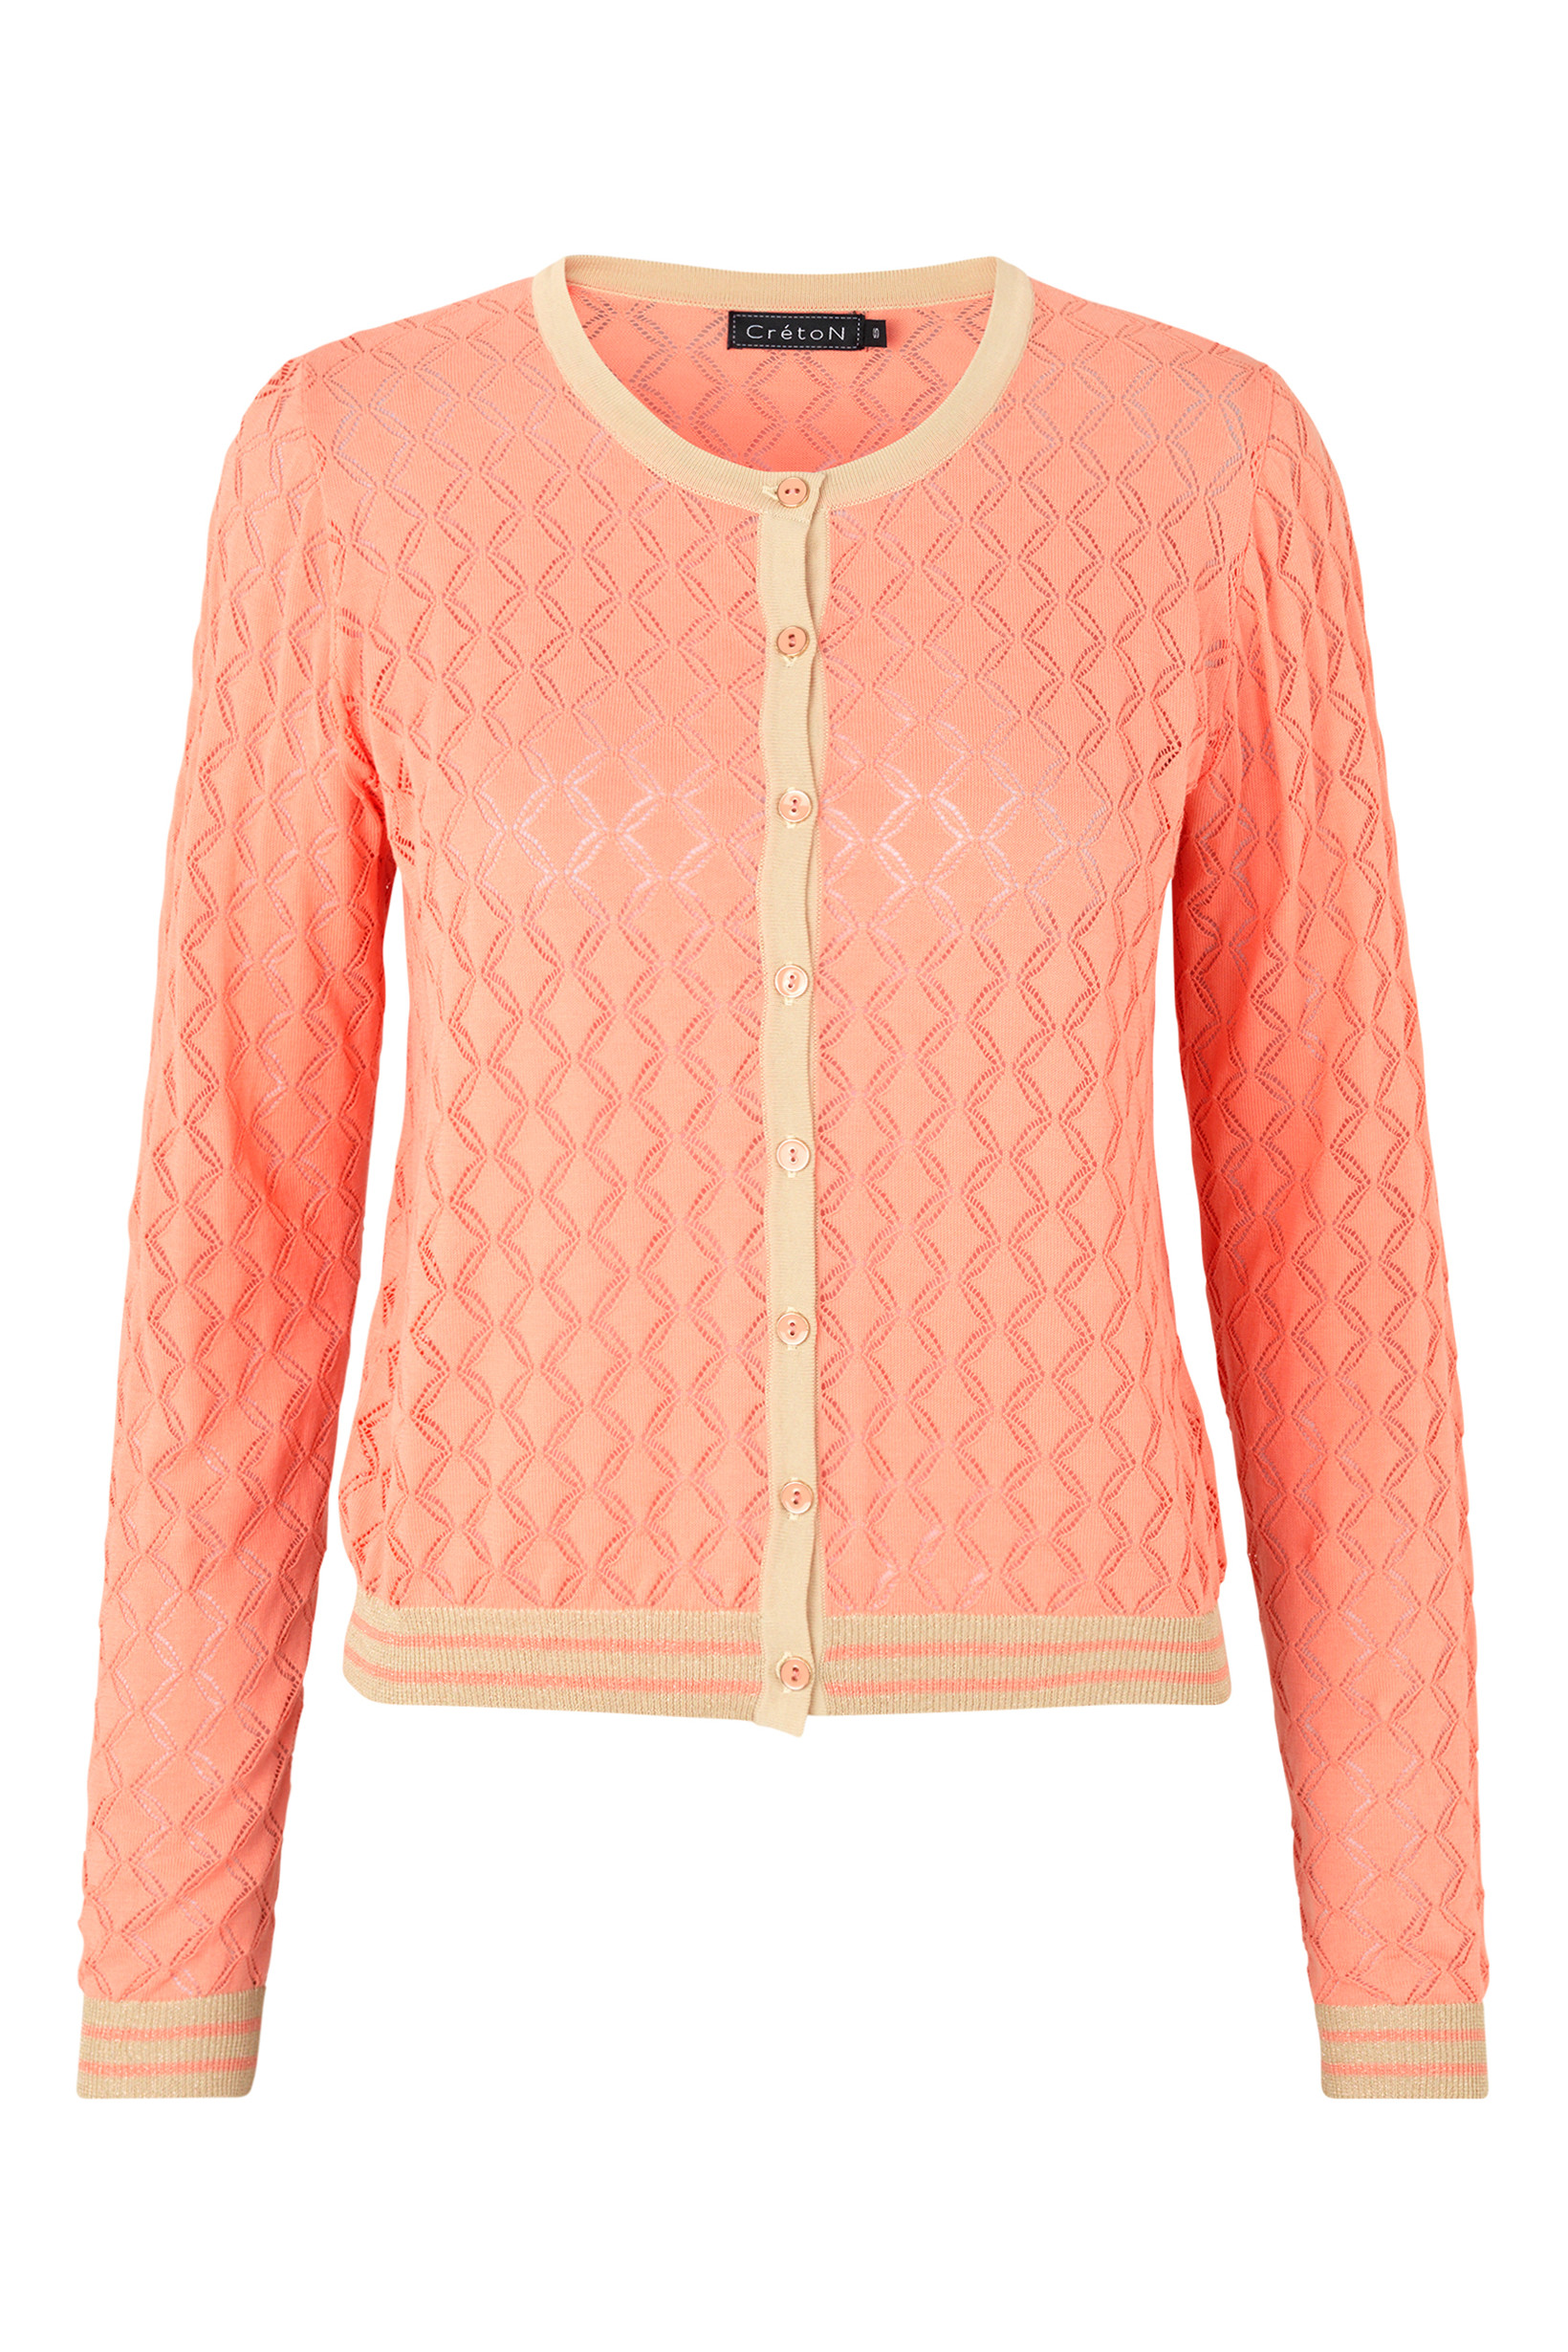 Image of A-Ghitta - Smuk Cardigan i 3 Farver - Coral